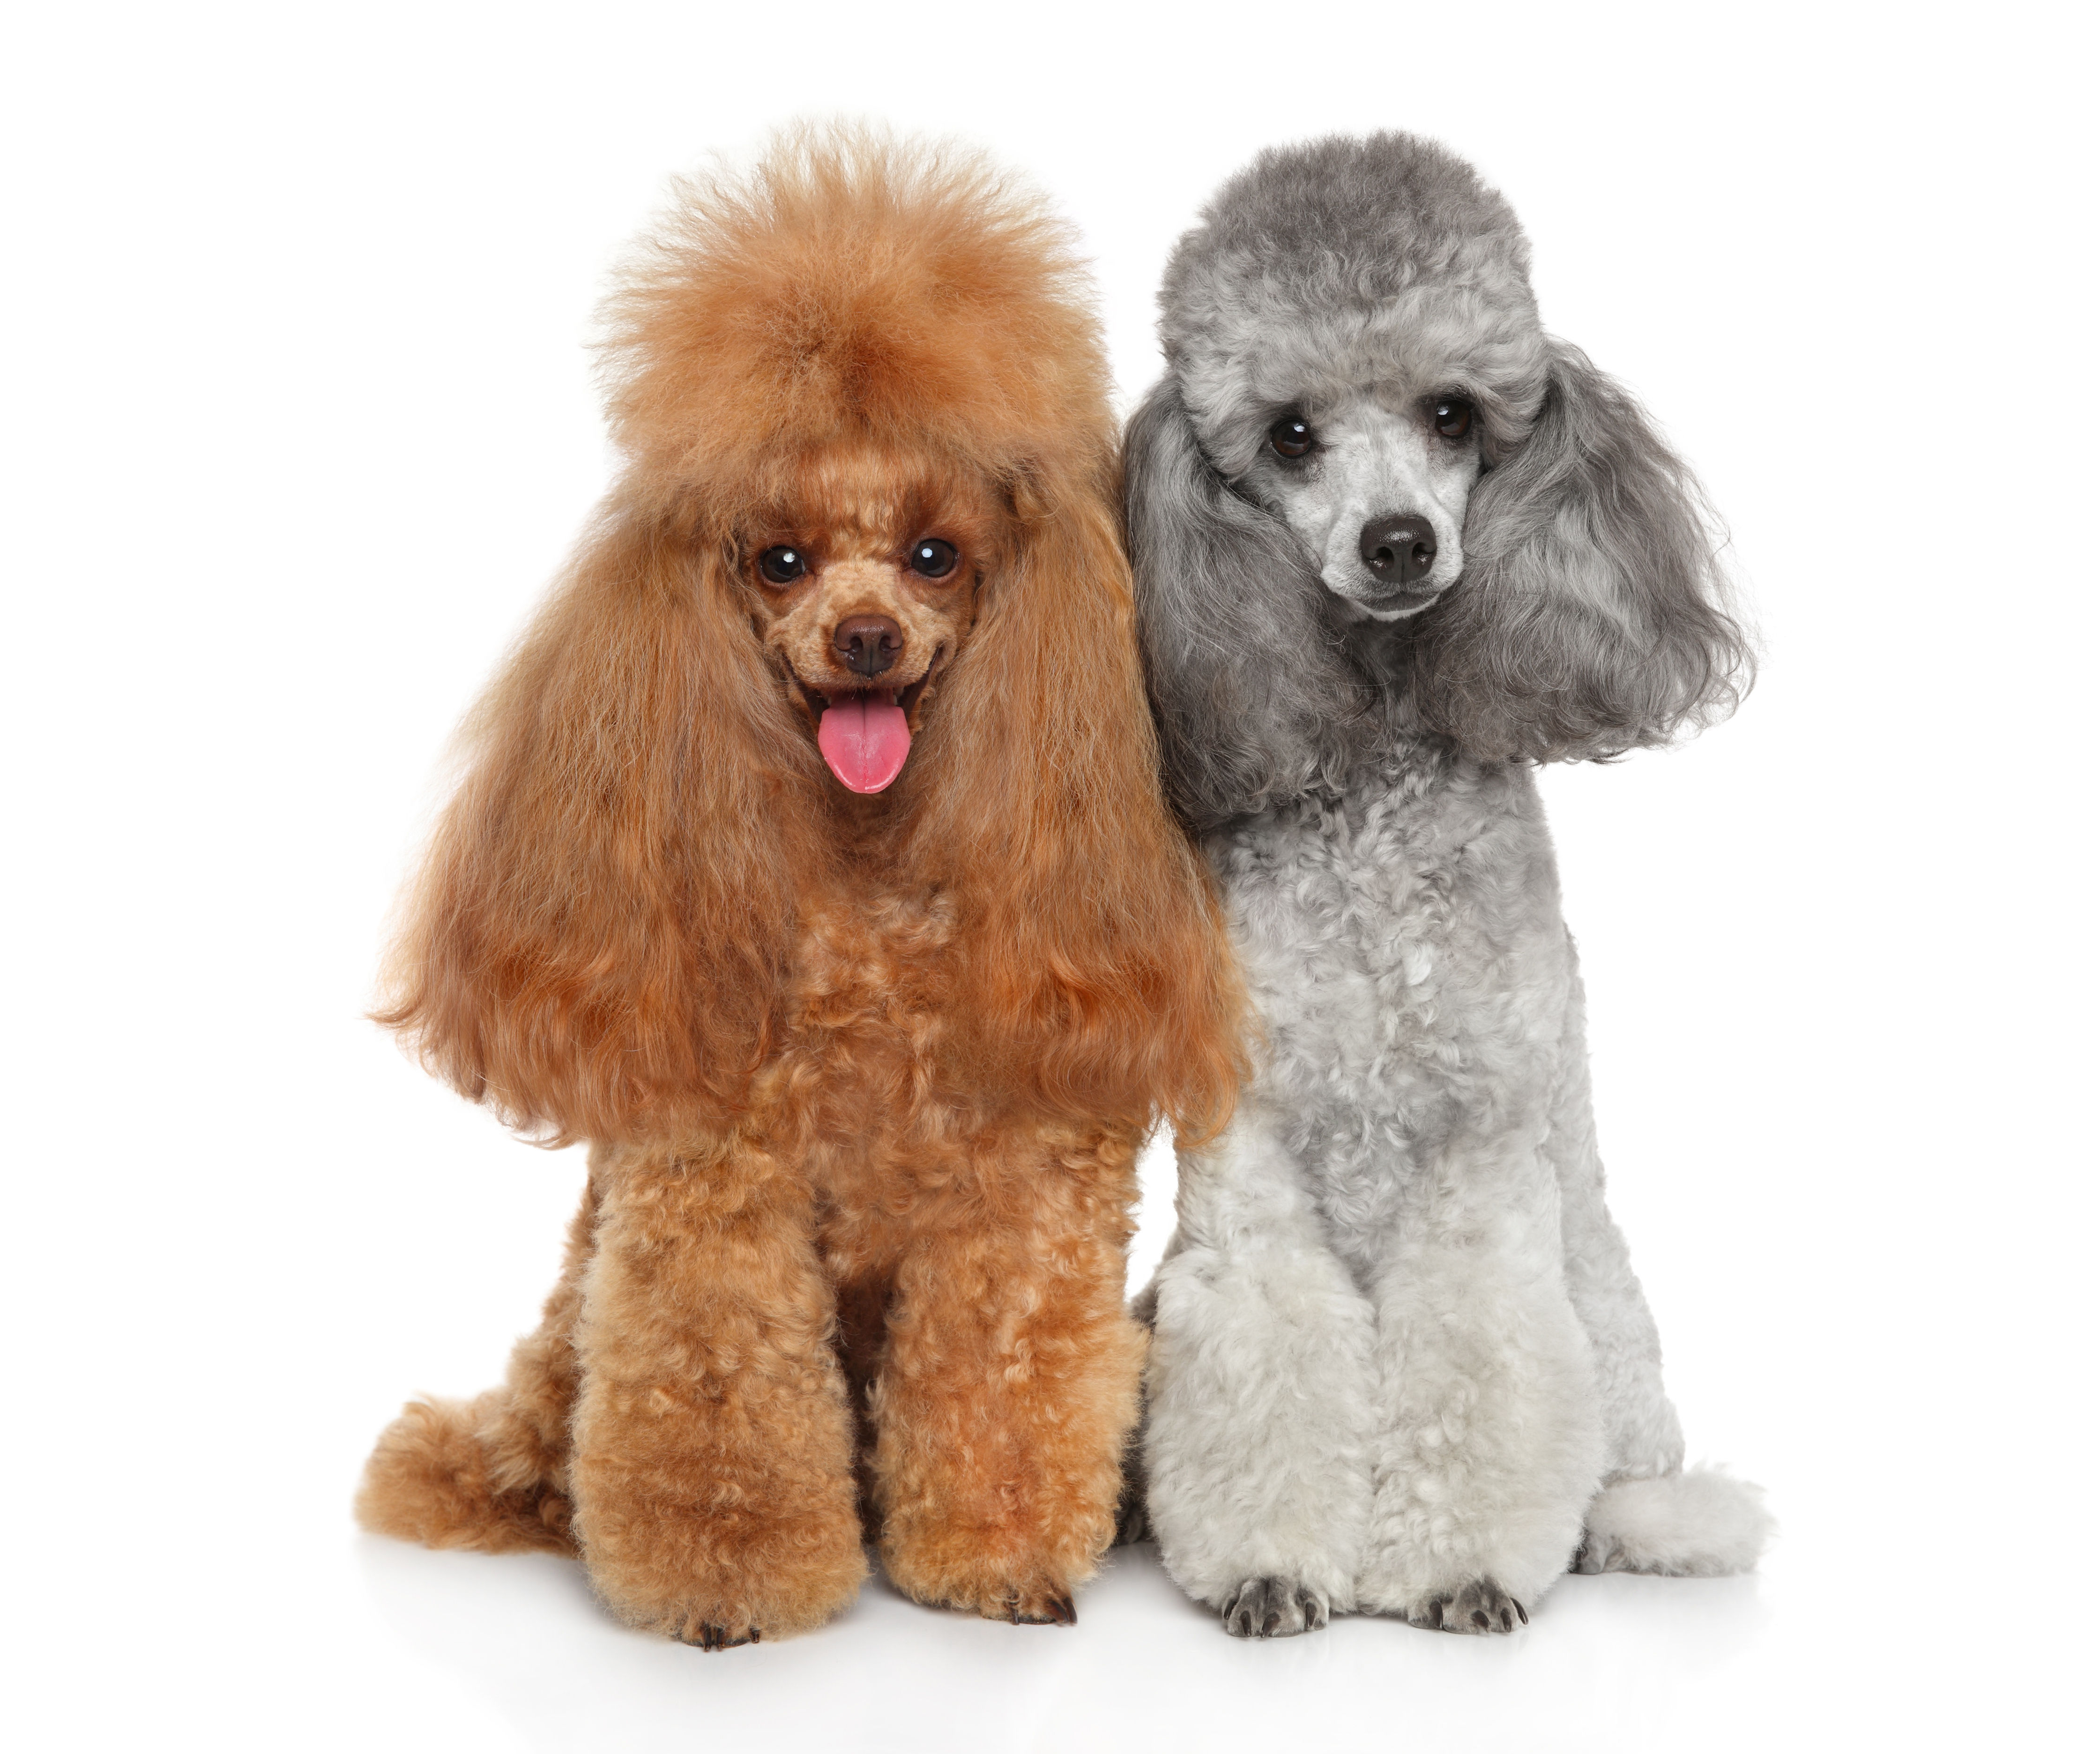 Brown and gray Toy Poodles sitting against white background